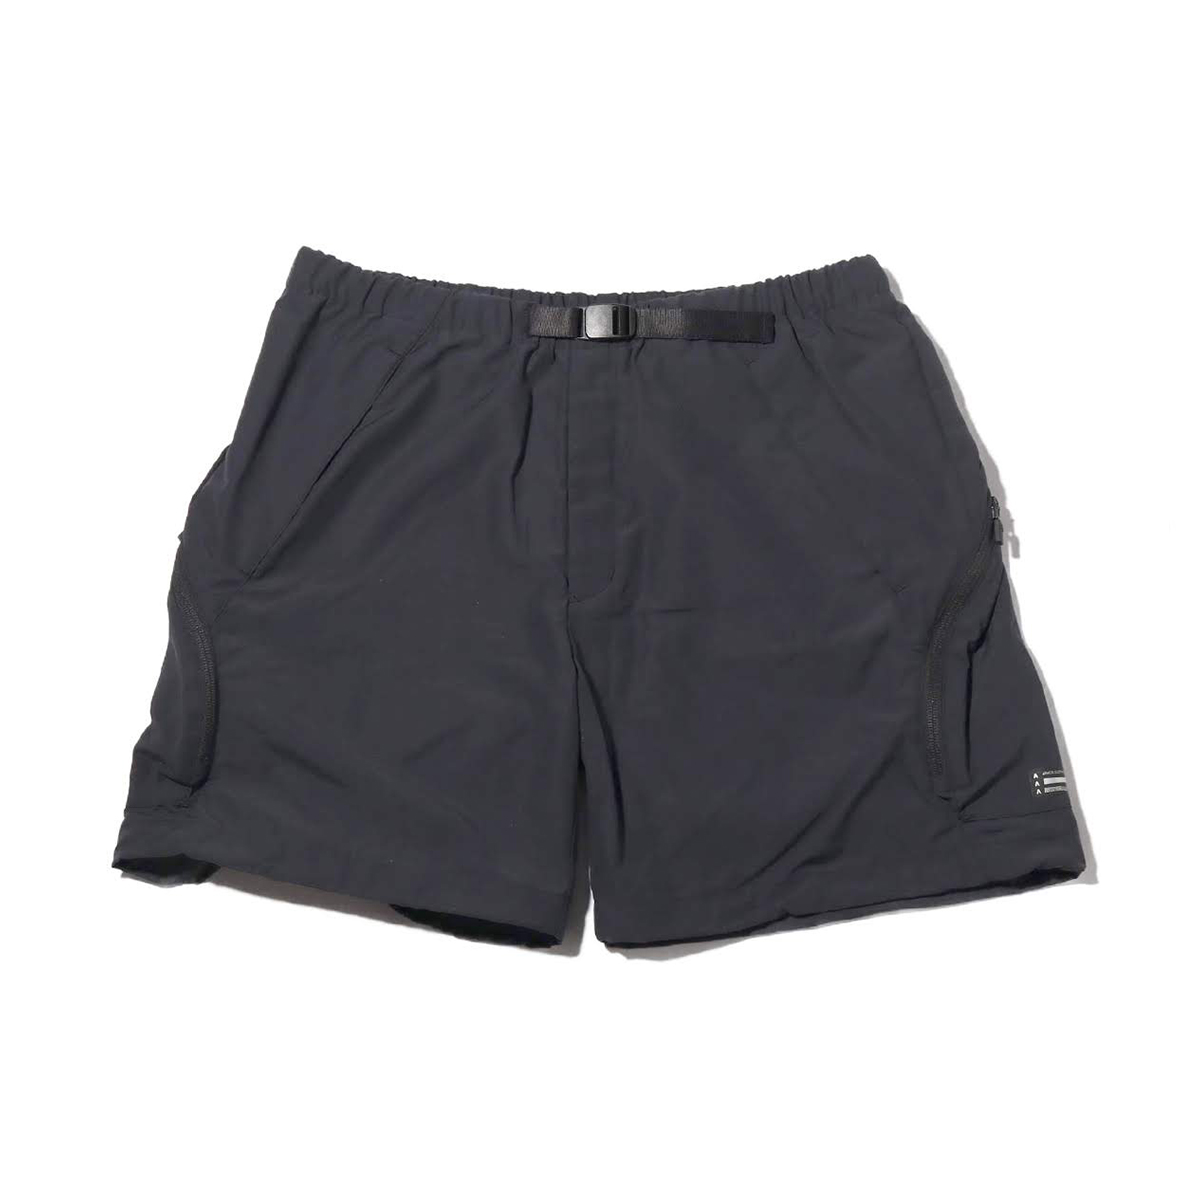 DESCENTE ddd X ATMOS LAB 6 POCKET SHORTS